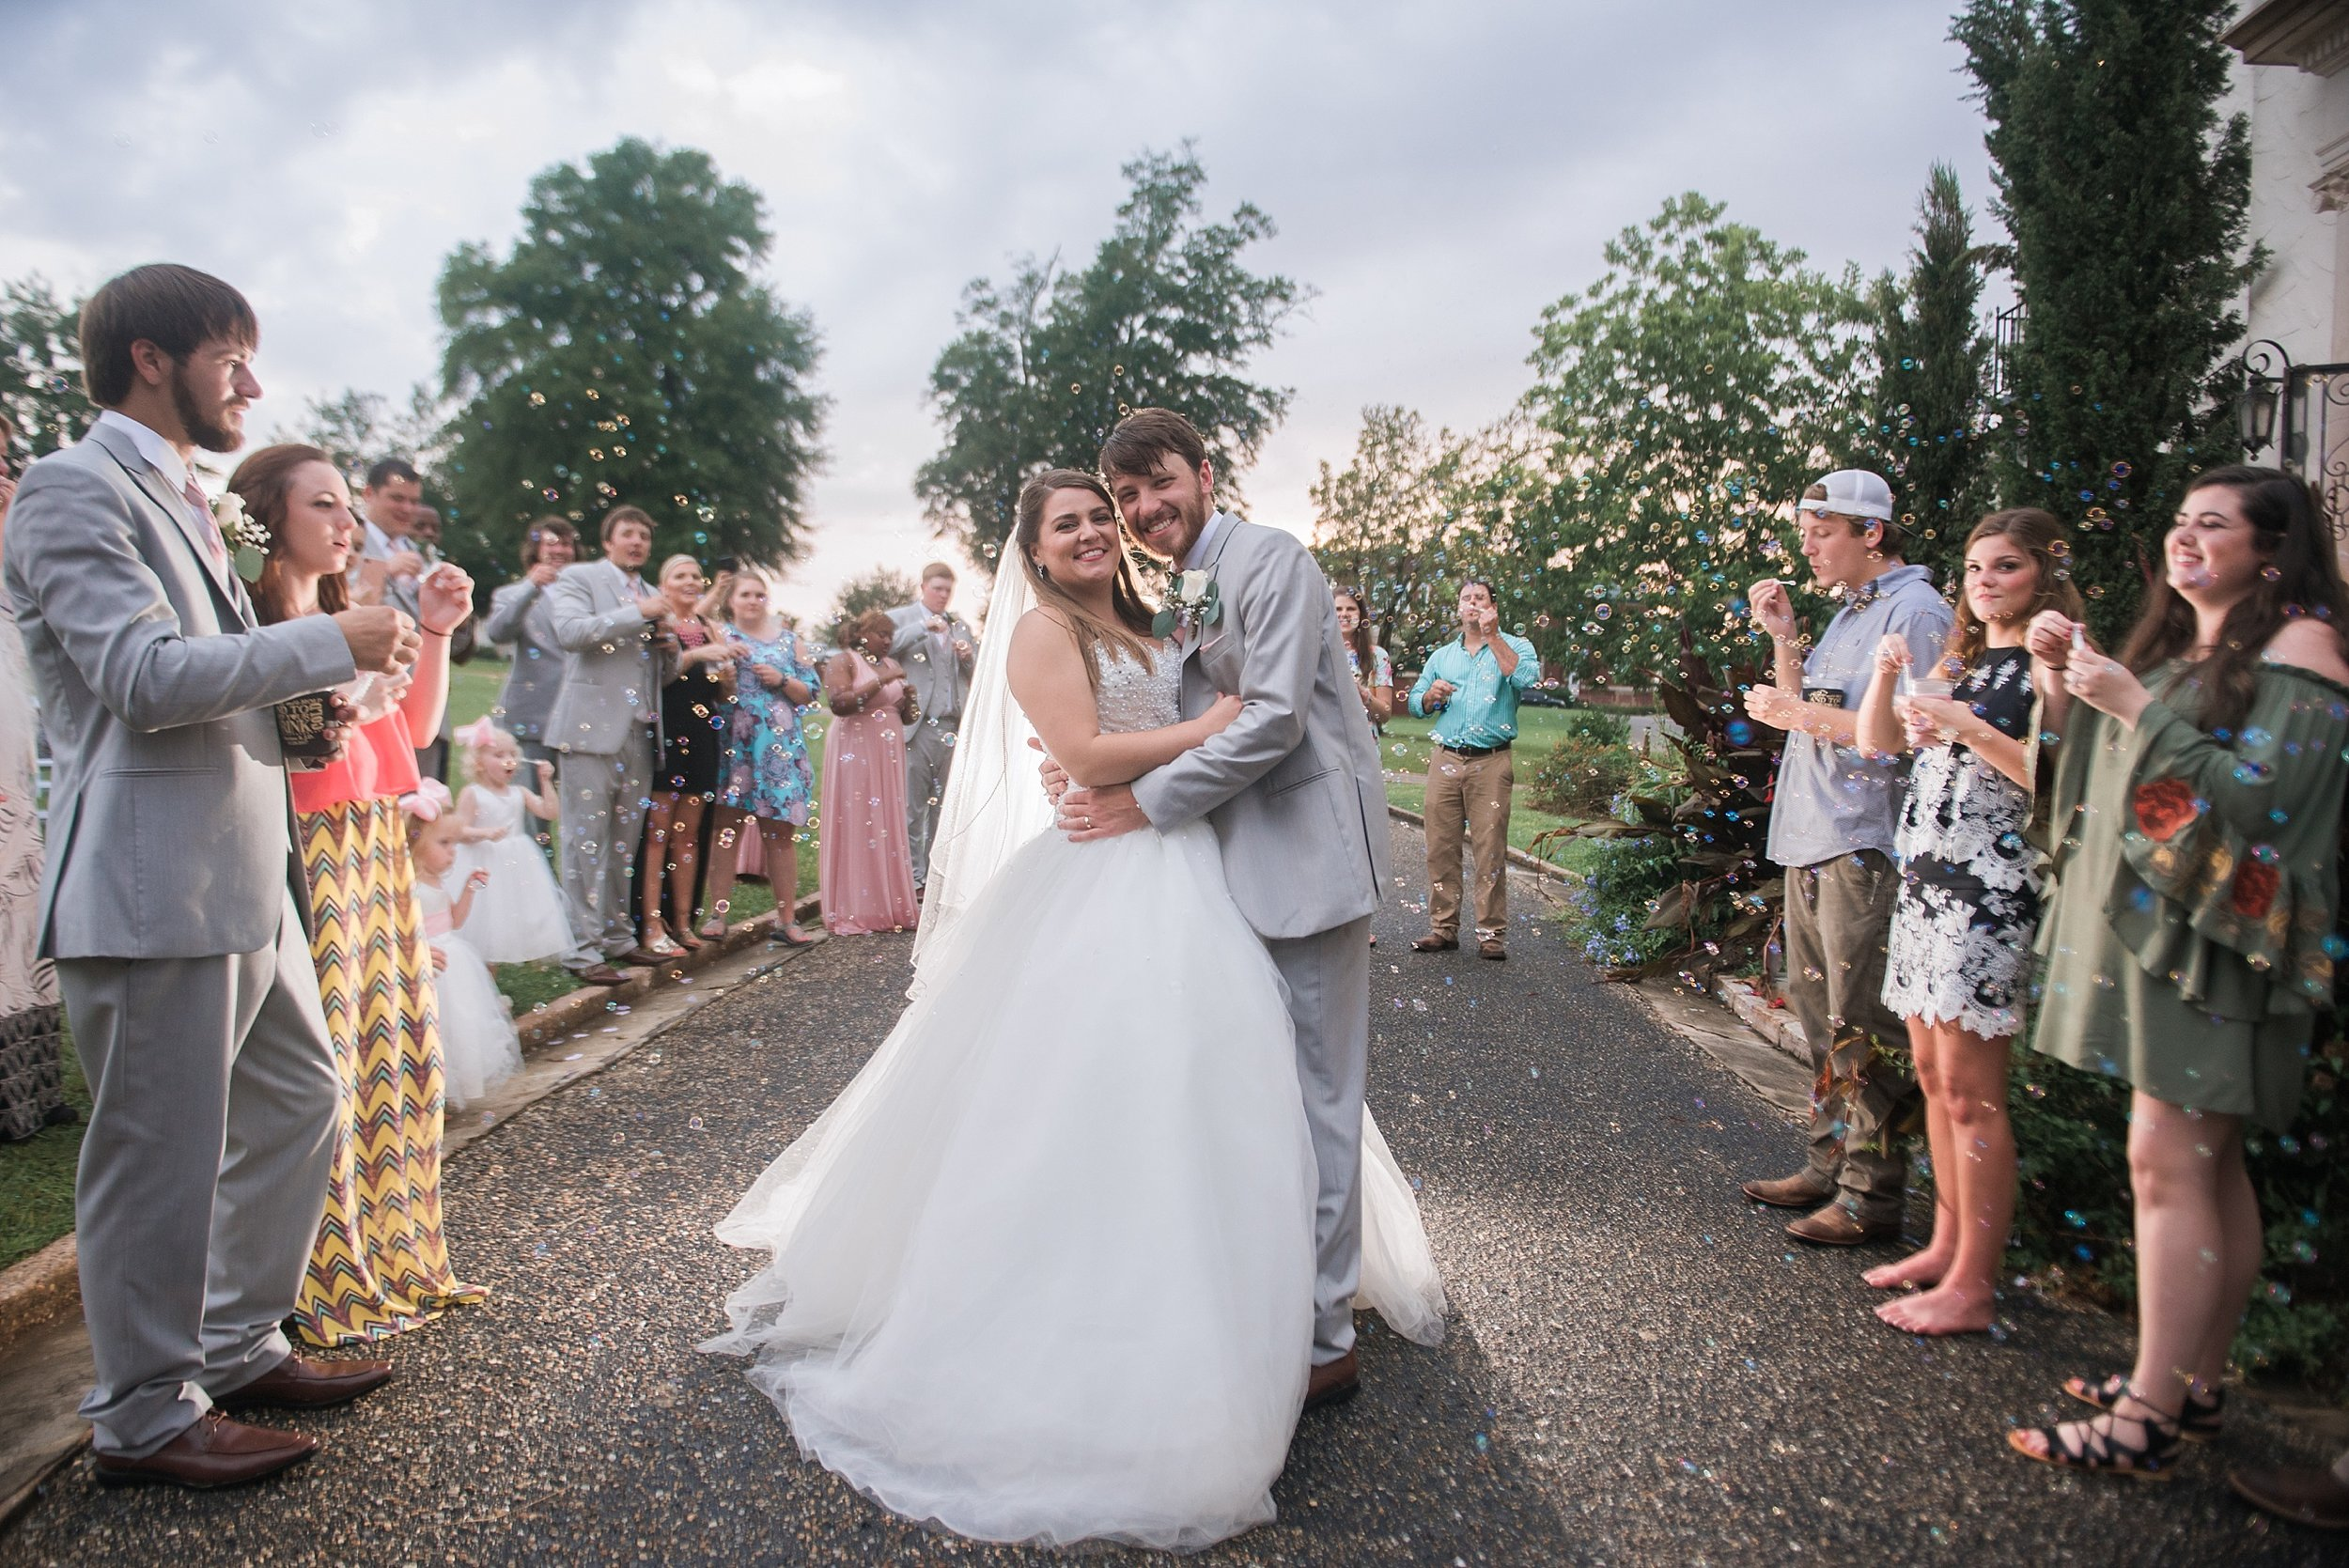 the newlyweds are showered with bubbles by their wedding guests as they leave their reception